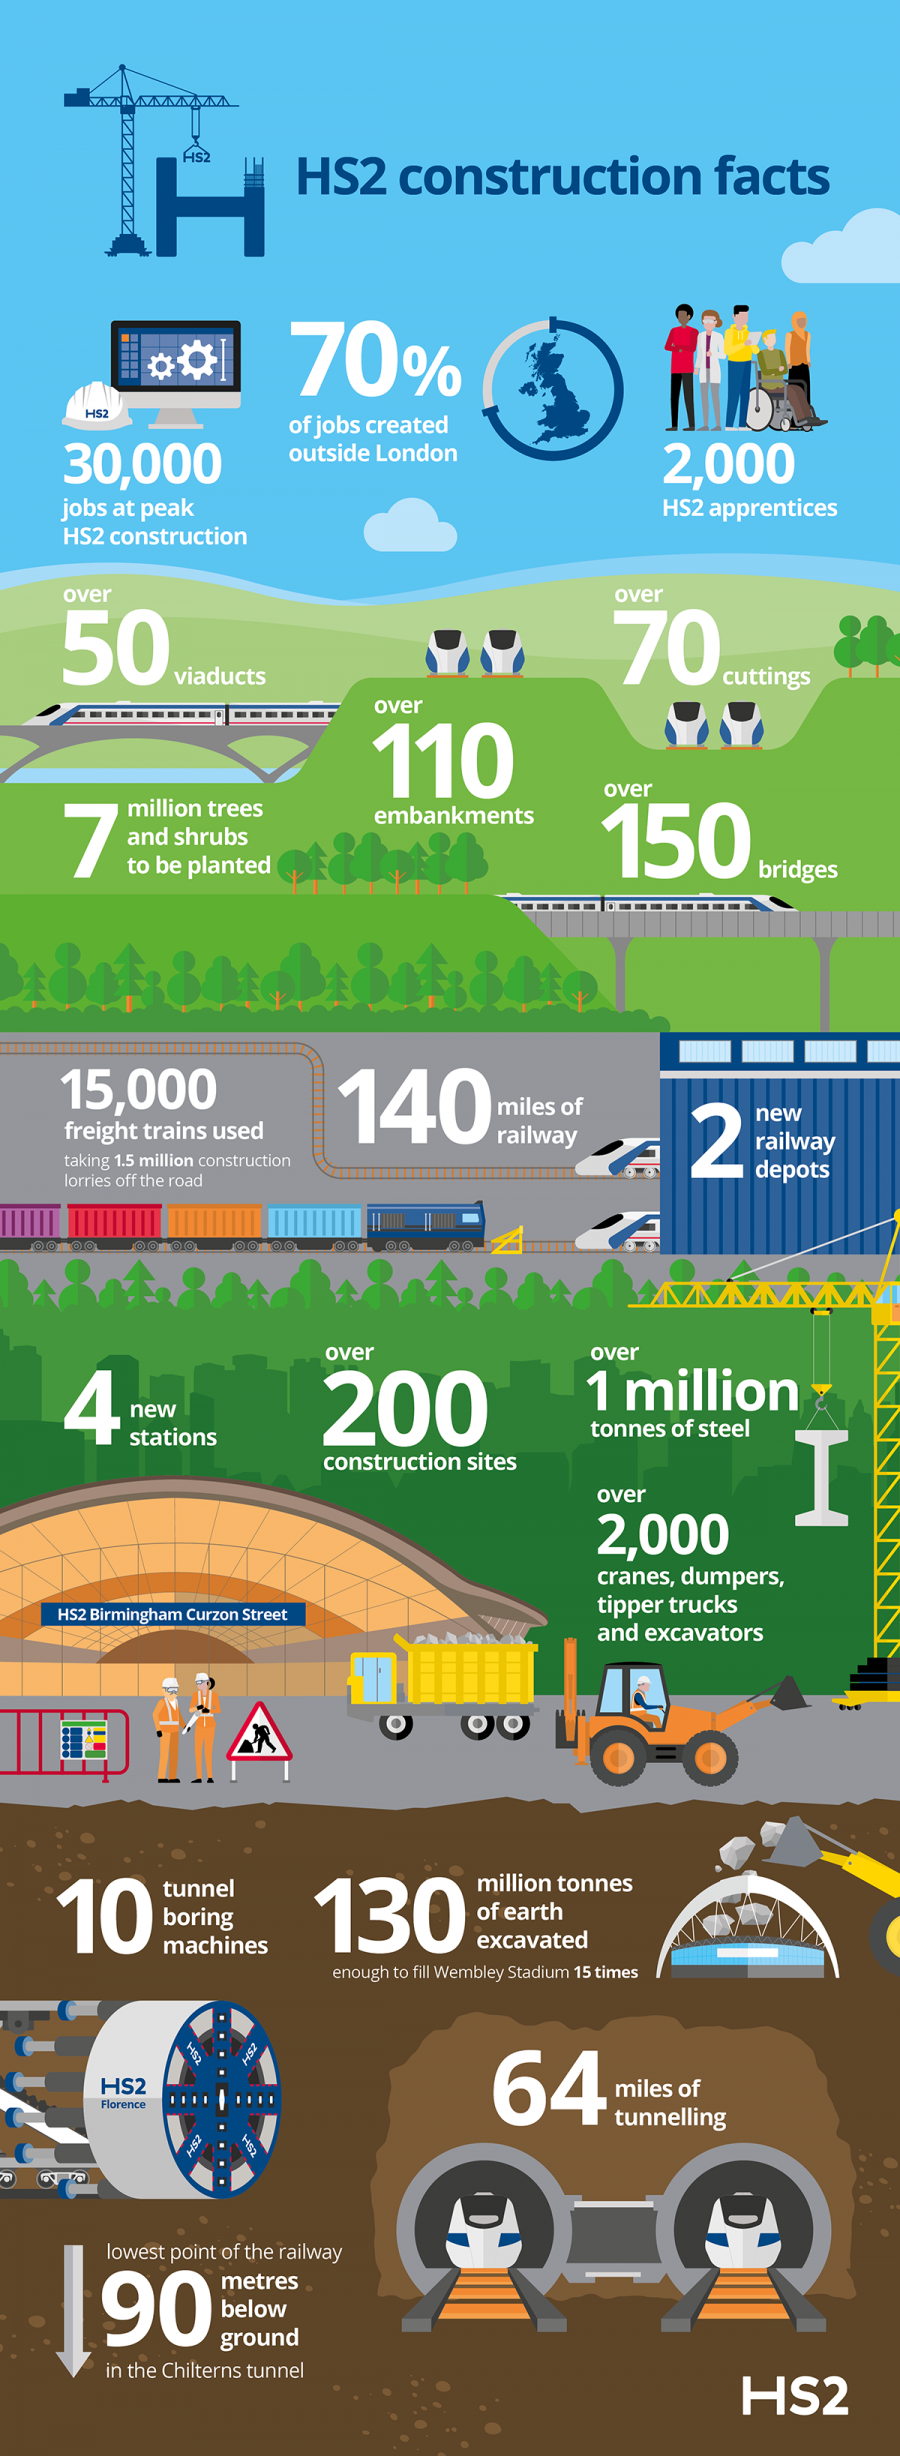 HS2 construction facts Phase One   30,000 jobs at peak HS2 construction. 70% of jobs created outside London. 2,000 HS2 apprentices.  Over 50 viaducts.  Over 70 cuttings.  Over 110 embankments.  Over 150 bridges.  7 million trees and shrubs to be planted.  15,000 freight trains used taking 1.5 million construction lorries off the road.  140 miles of railway.  2 new railway depots.  4 new stations.  Over 200 construction sites.  Over 1 million tonnes of steel.  Over 2,000 cranes, dumpers, tipper trucks and excavators.  10 tunnel boring machines.  130 million tonnes of earth excavated enough to fill Wembley Stadium 15 times. 64 miles of tunnelling.  Lowest points of the railway 90 metres below ground in the Chilterns tunnel.